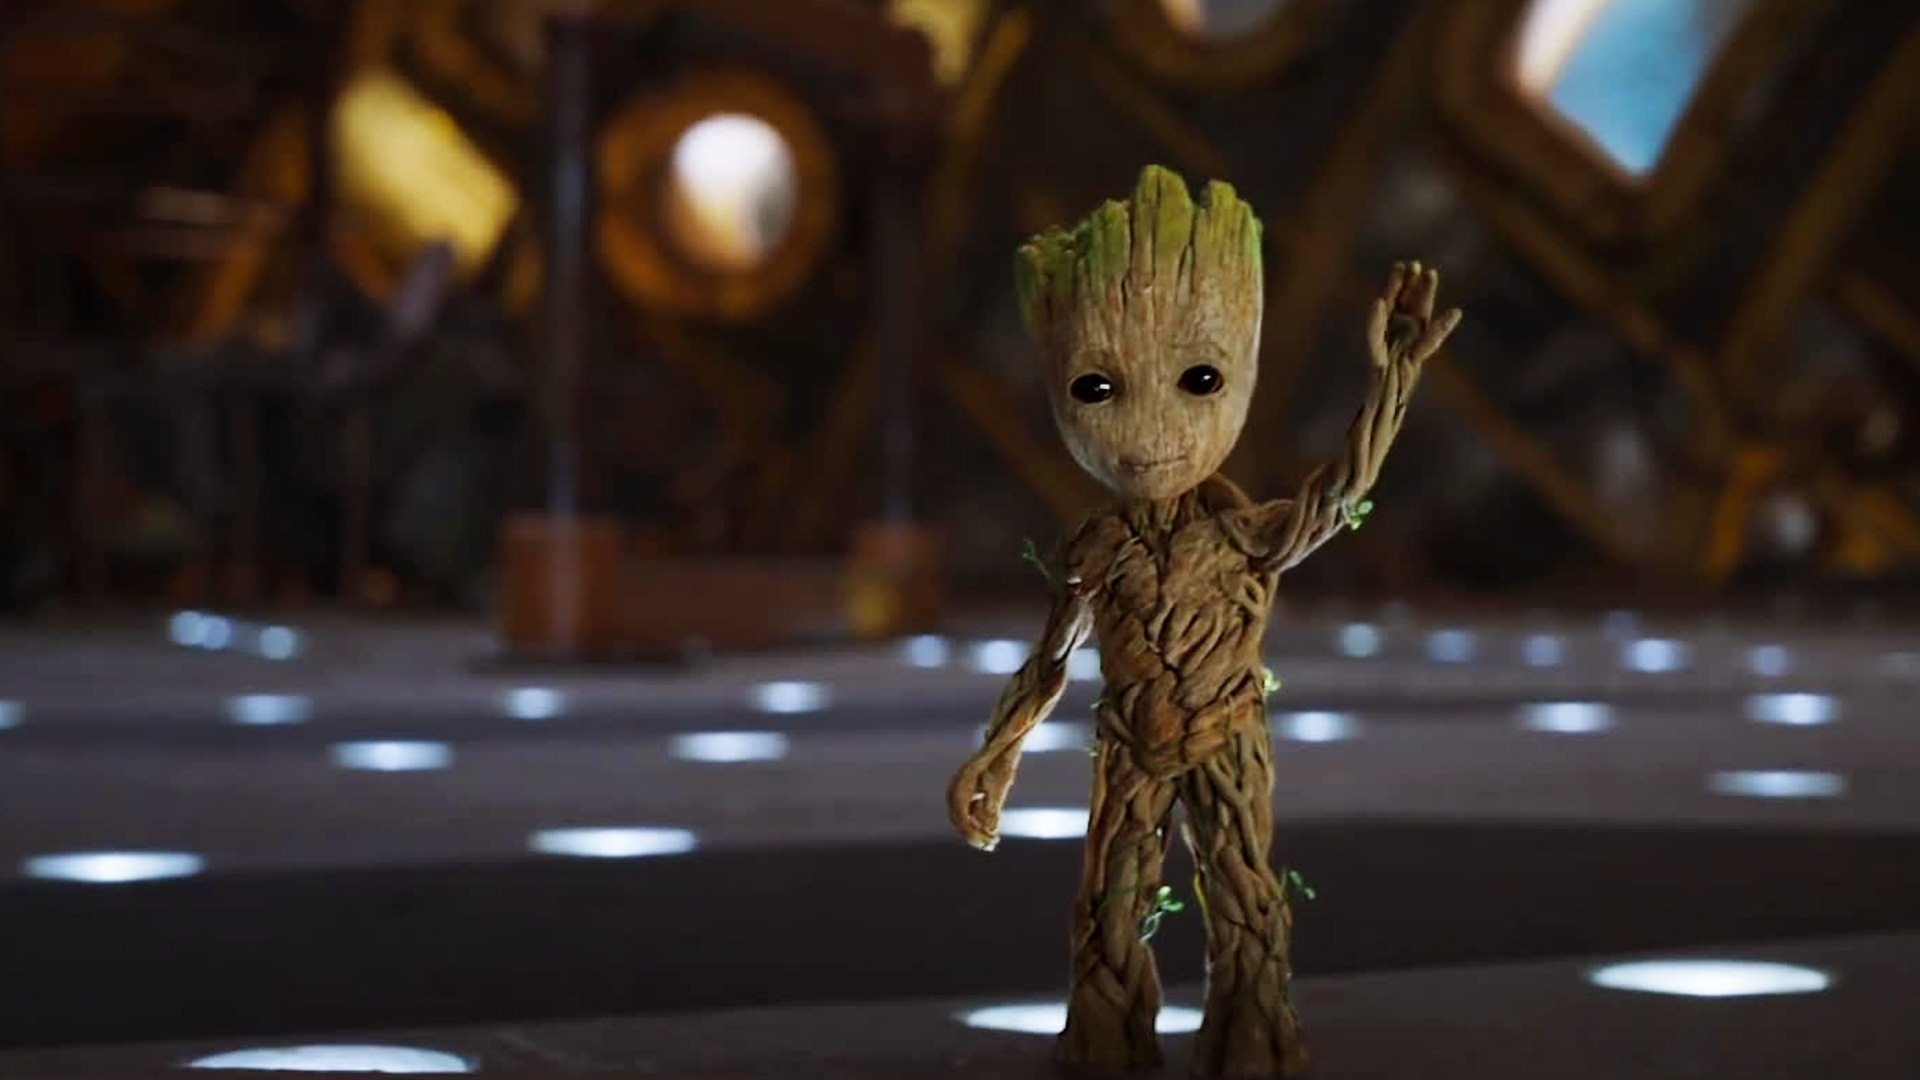 guardians of the galaxy baby groot live wallpaper - wallpaper hd